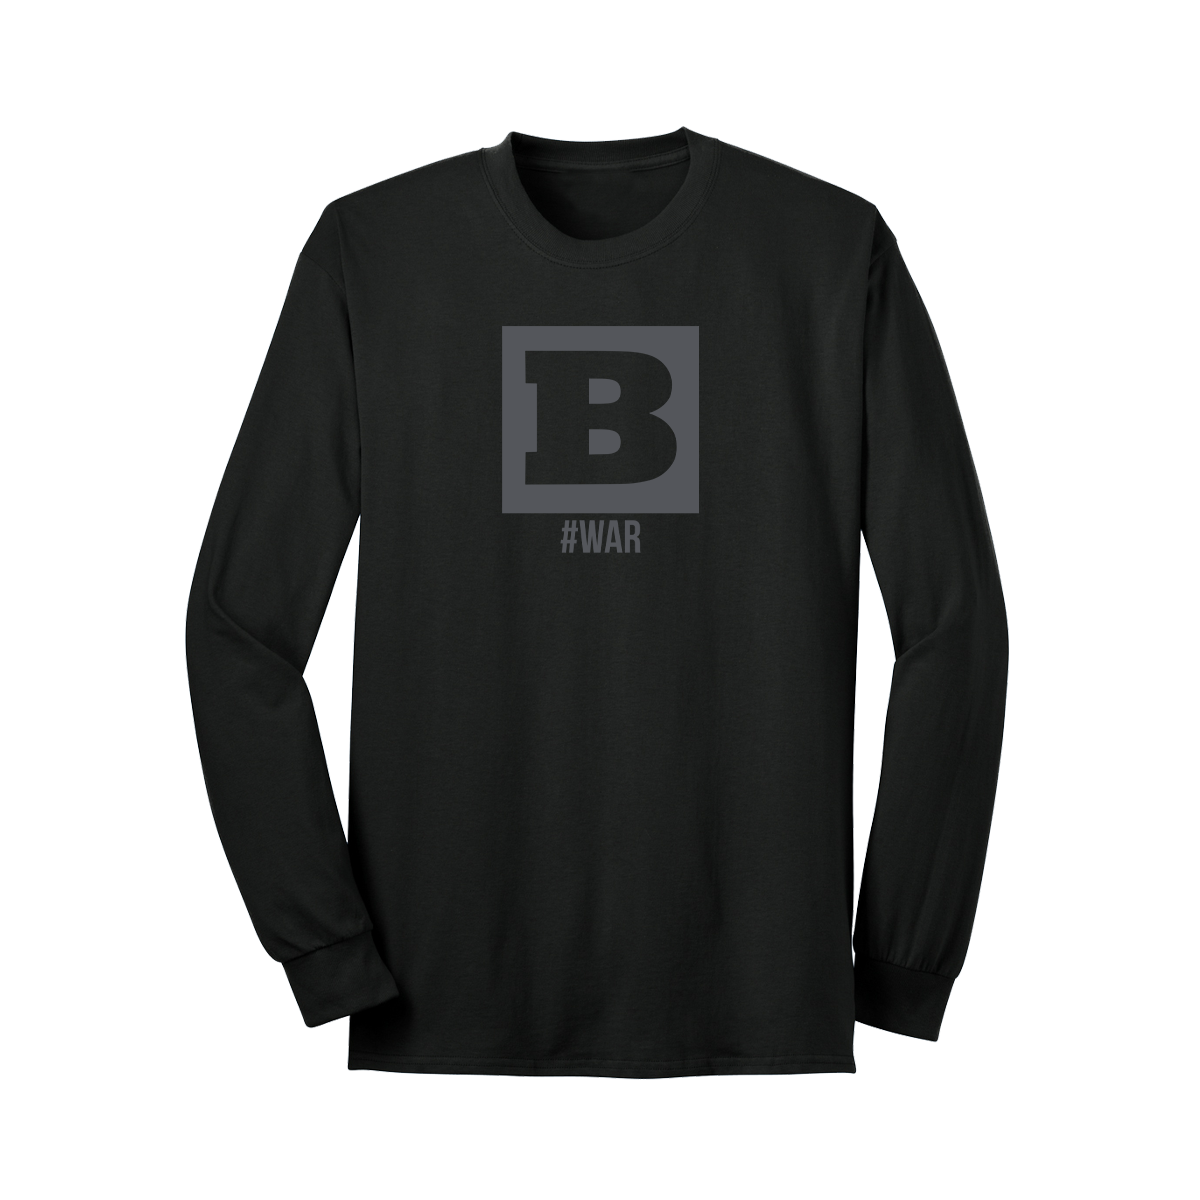 Breitbart #WAR Long Sleeve T-Shirt - Black